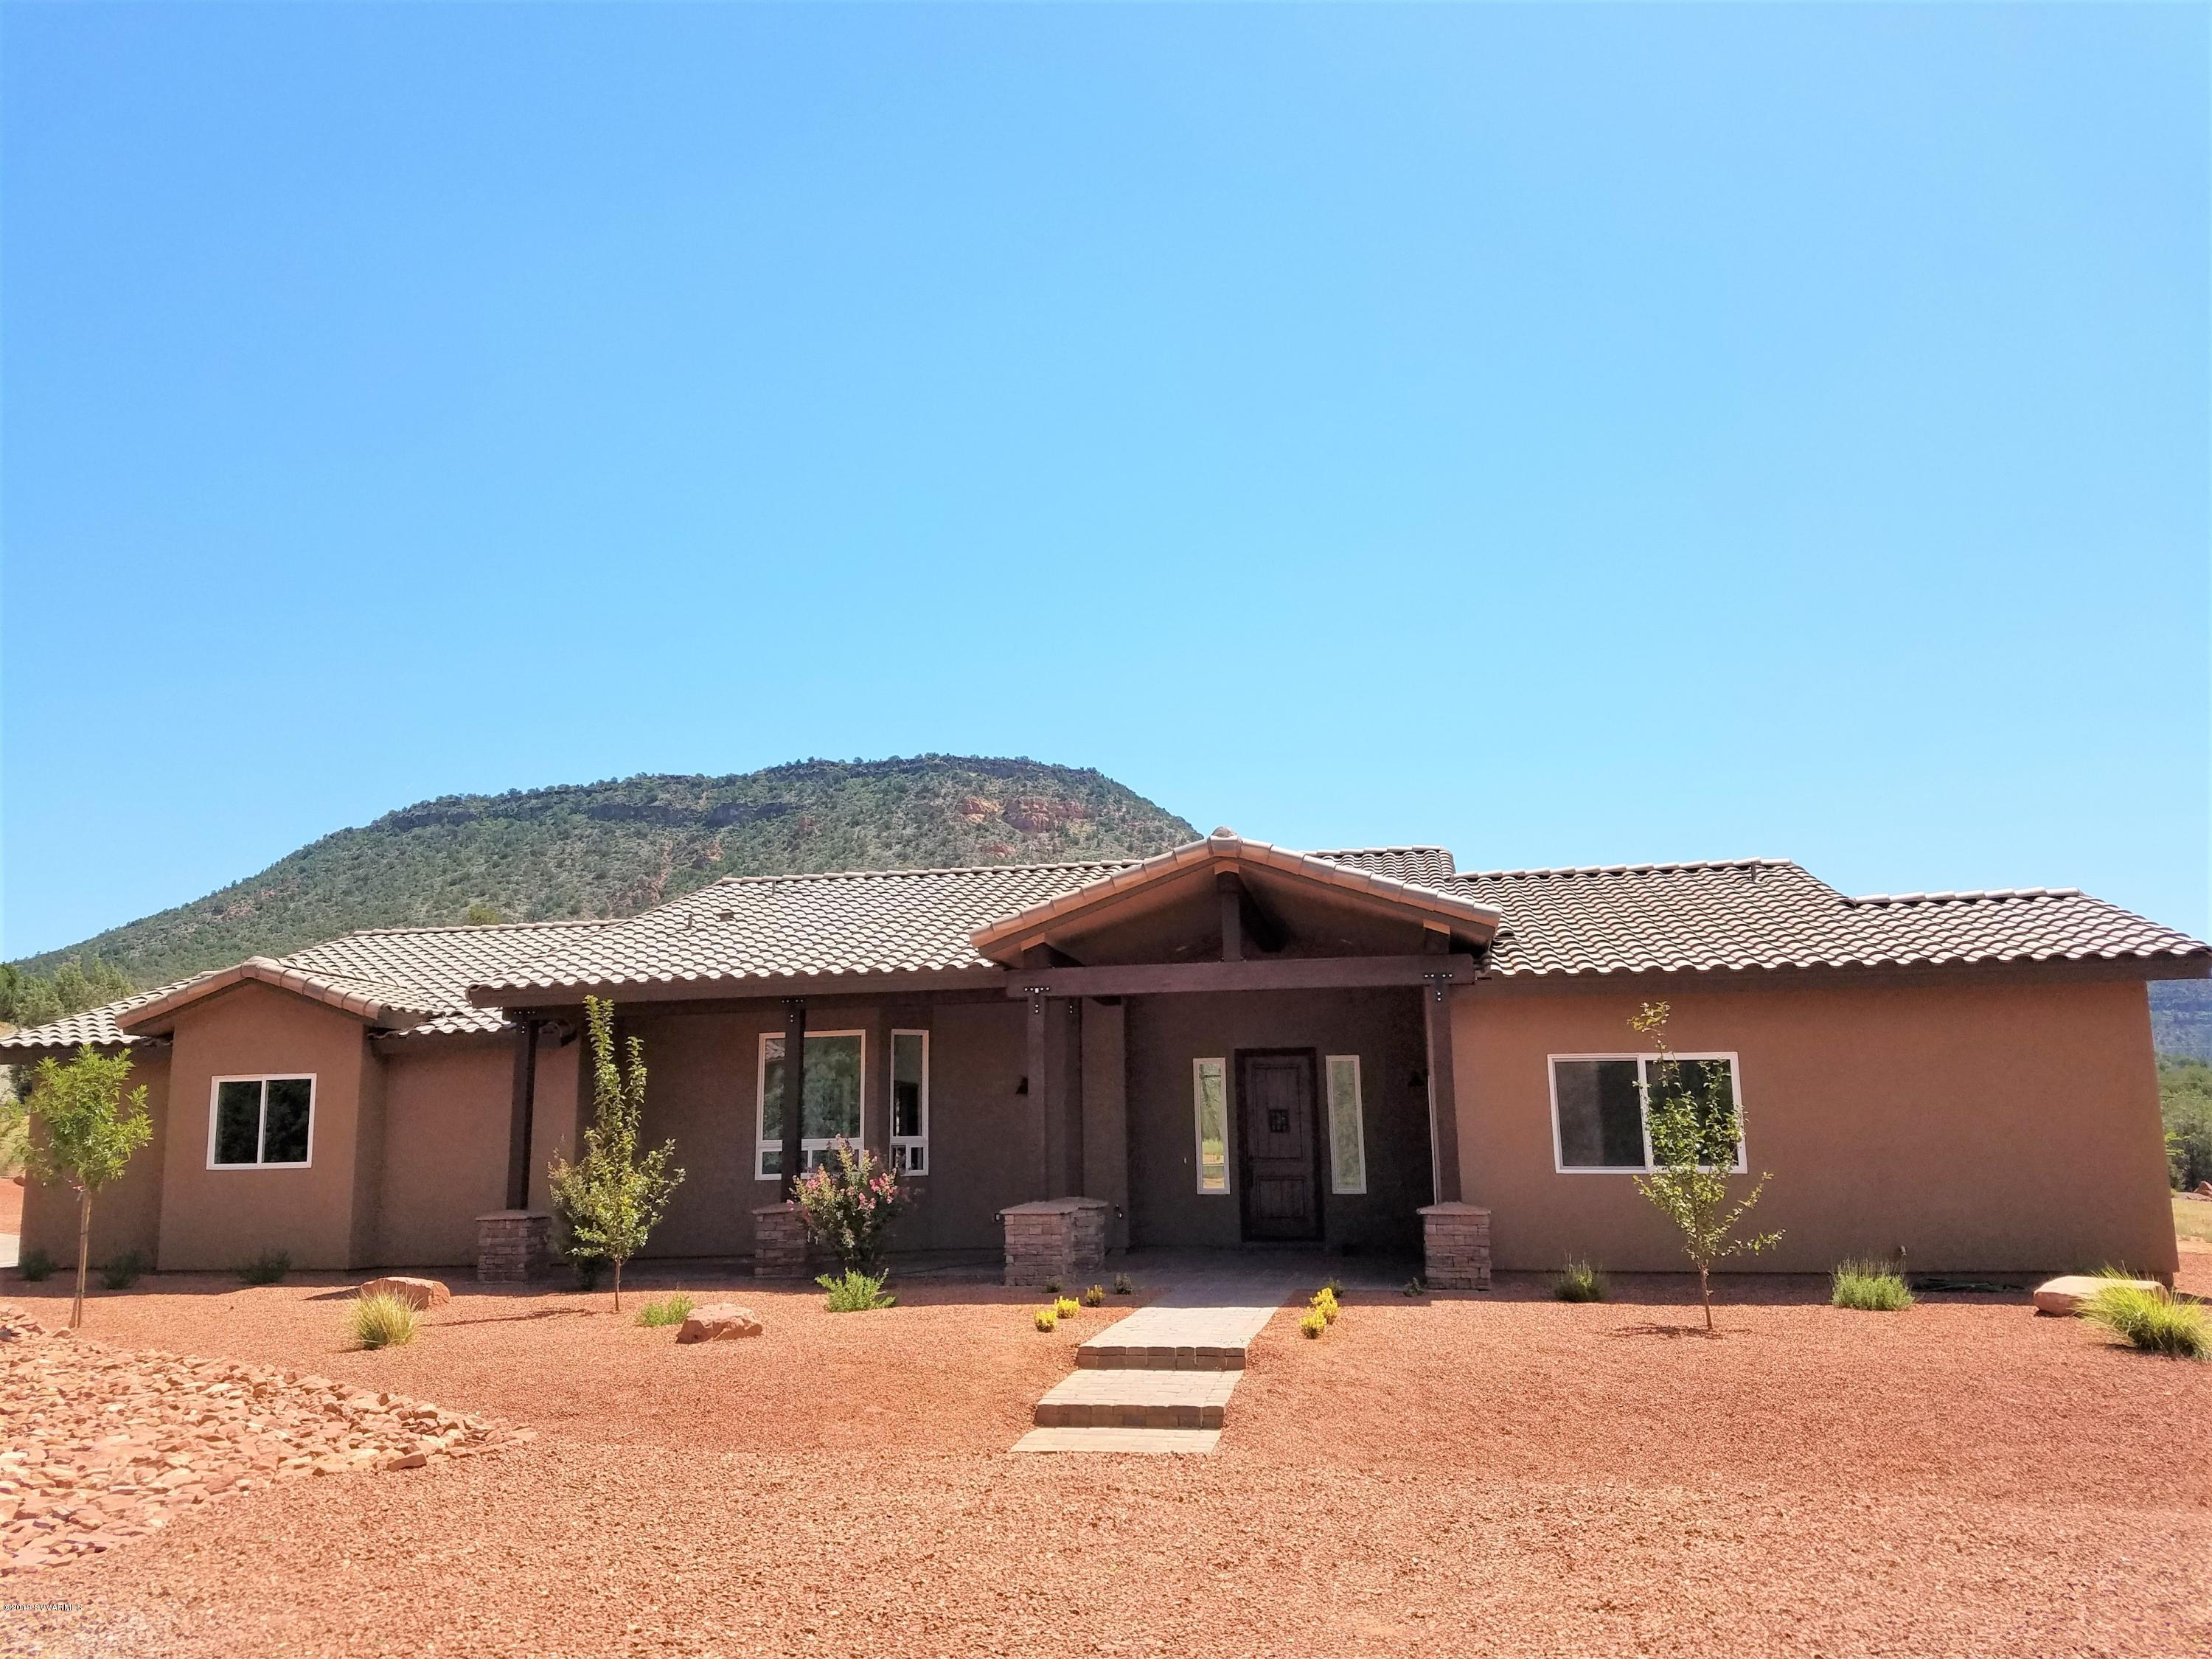 30  Casitas Court, Sedona, Arizona